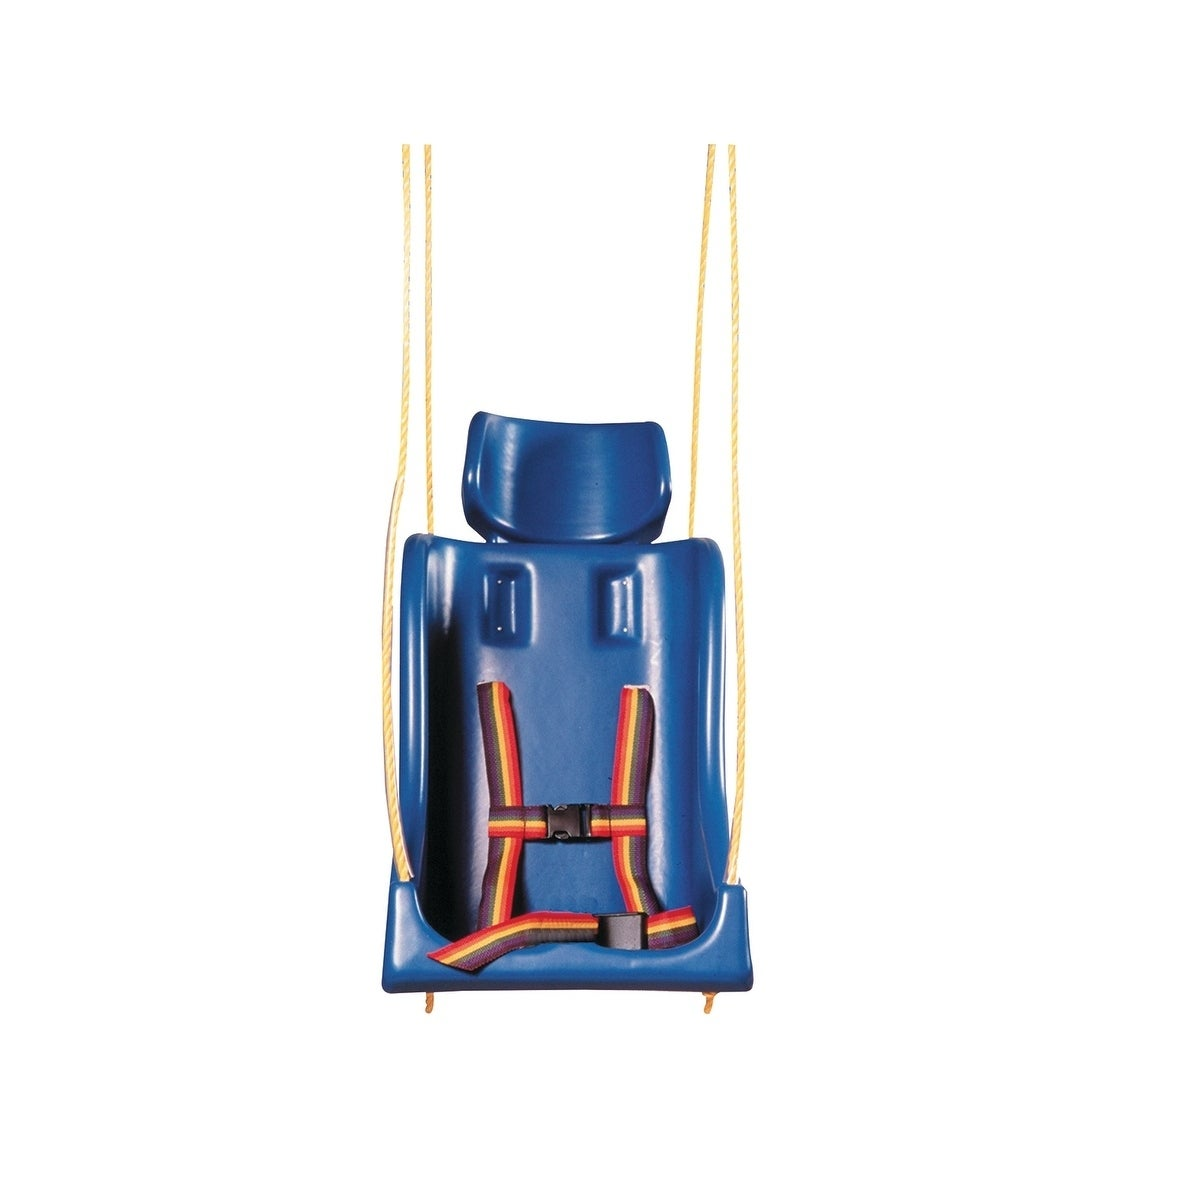 Full Support Swing Seat without Pommel, Medium (Teenager)...